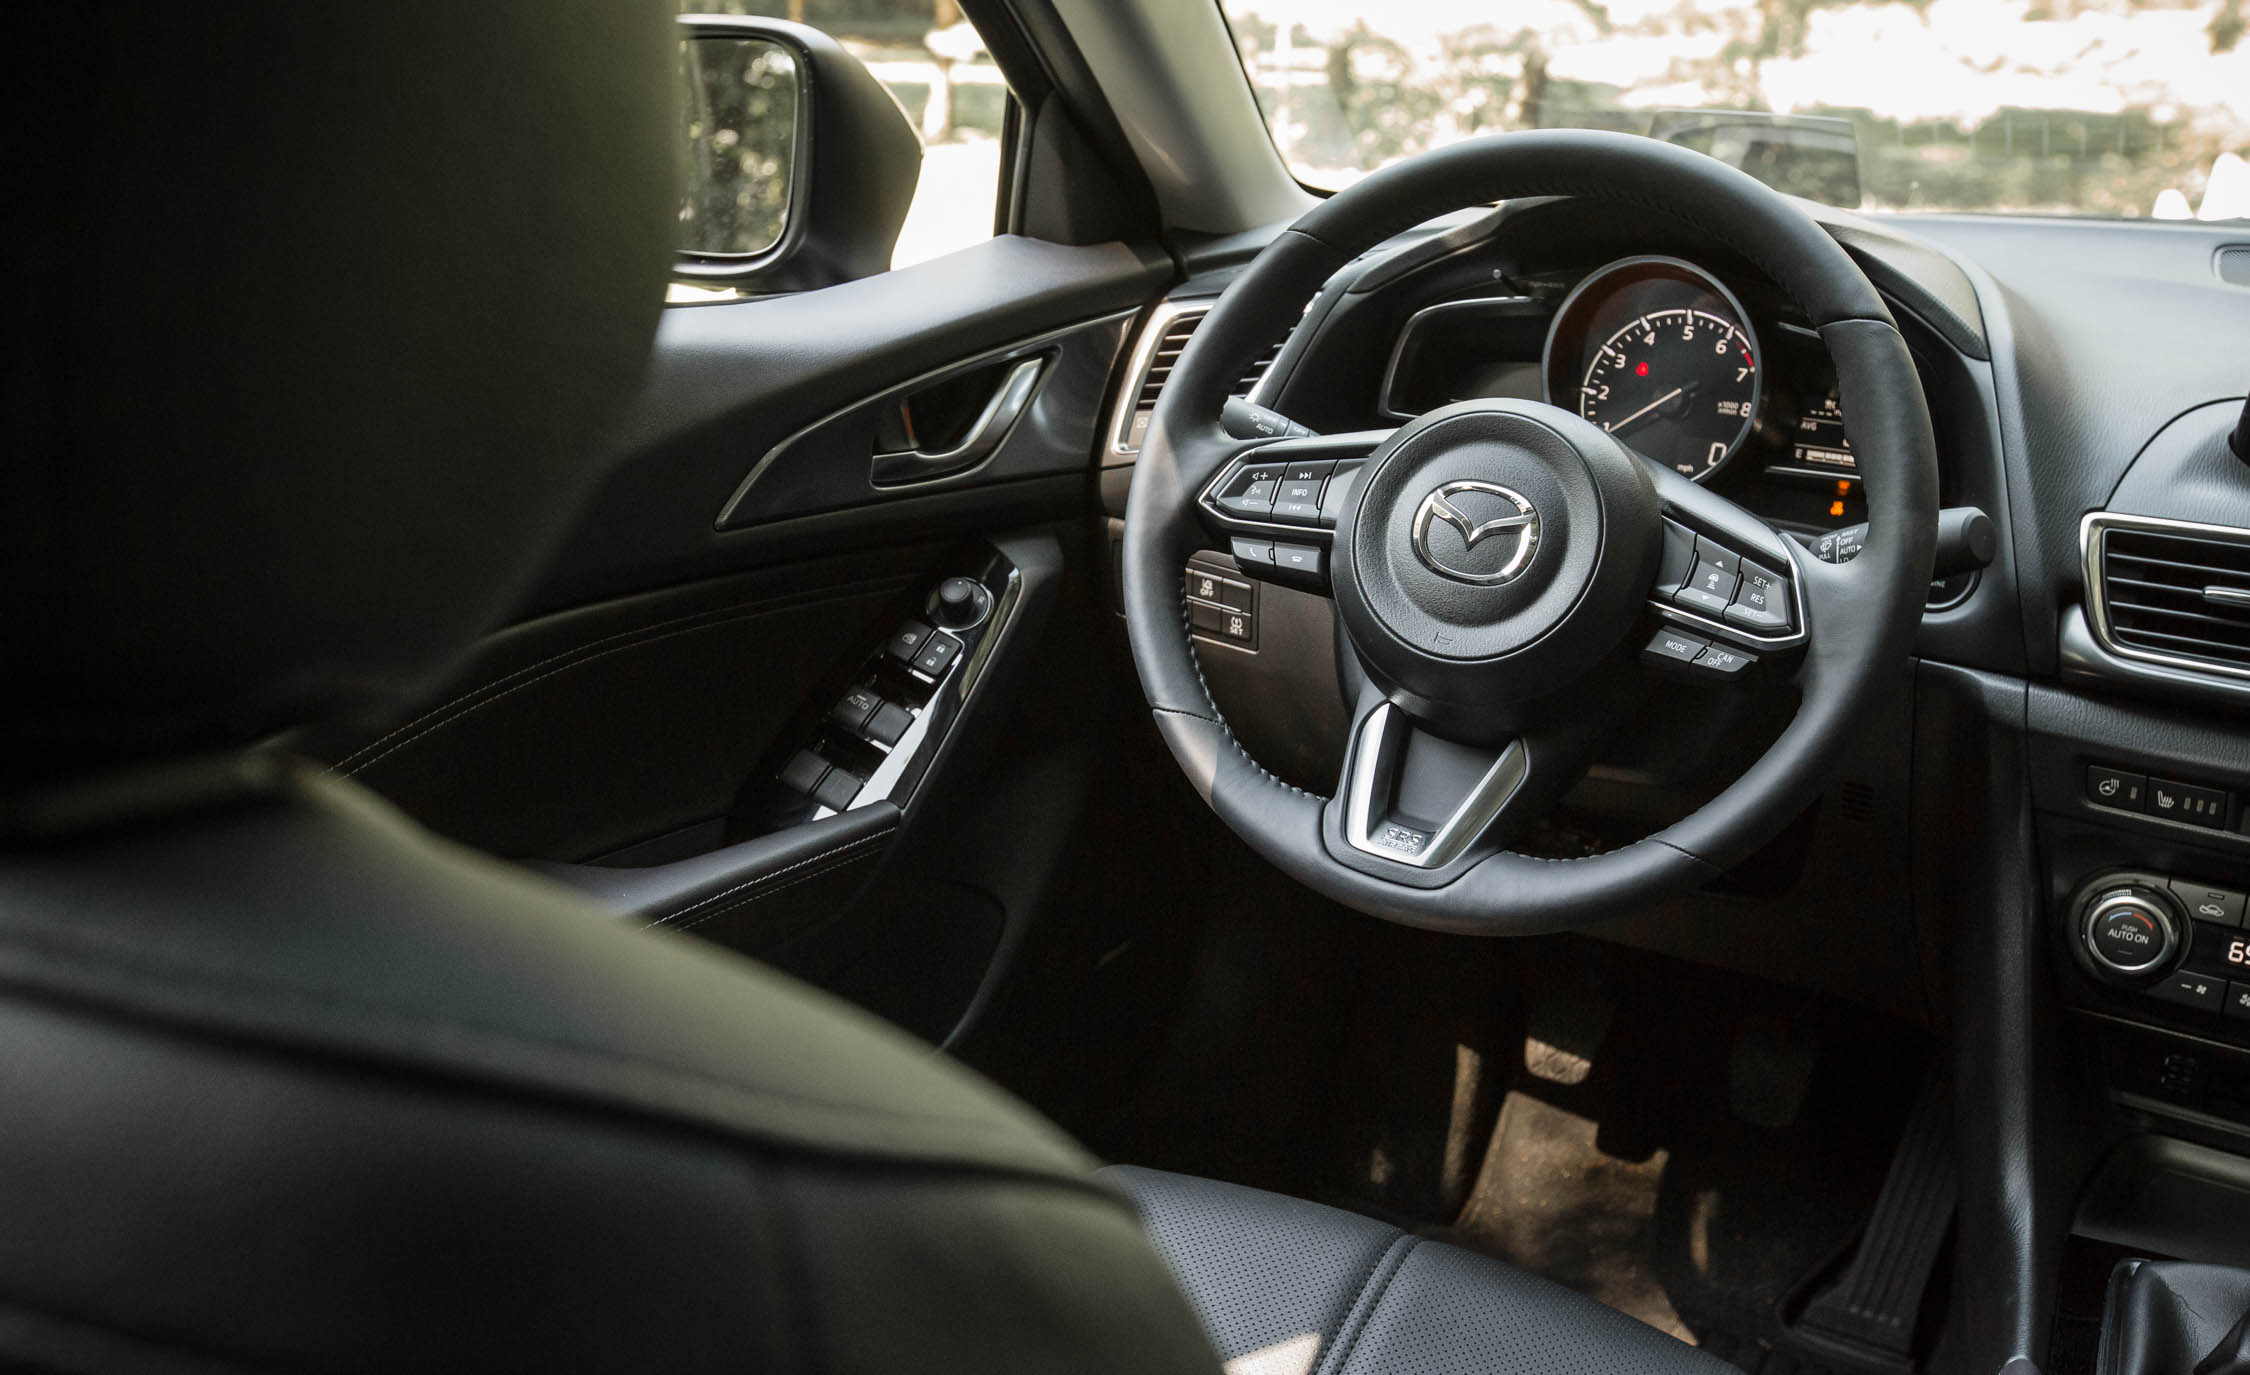 2017 Mazda3 Hatchback Interior Cockpit (Photo 30 of 40)